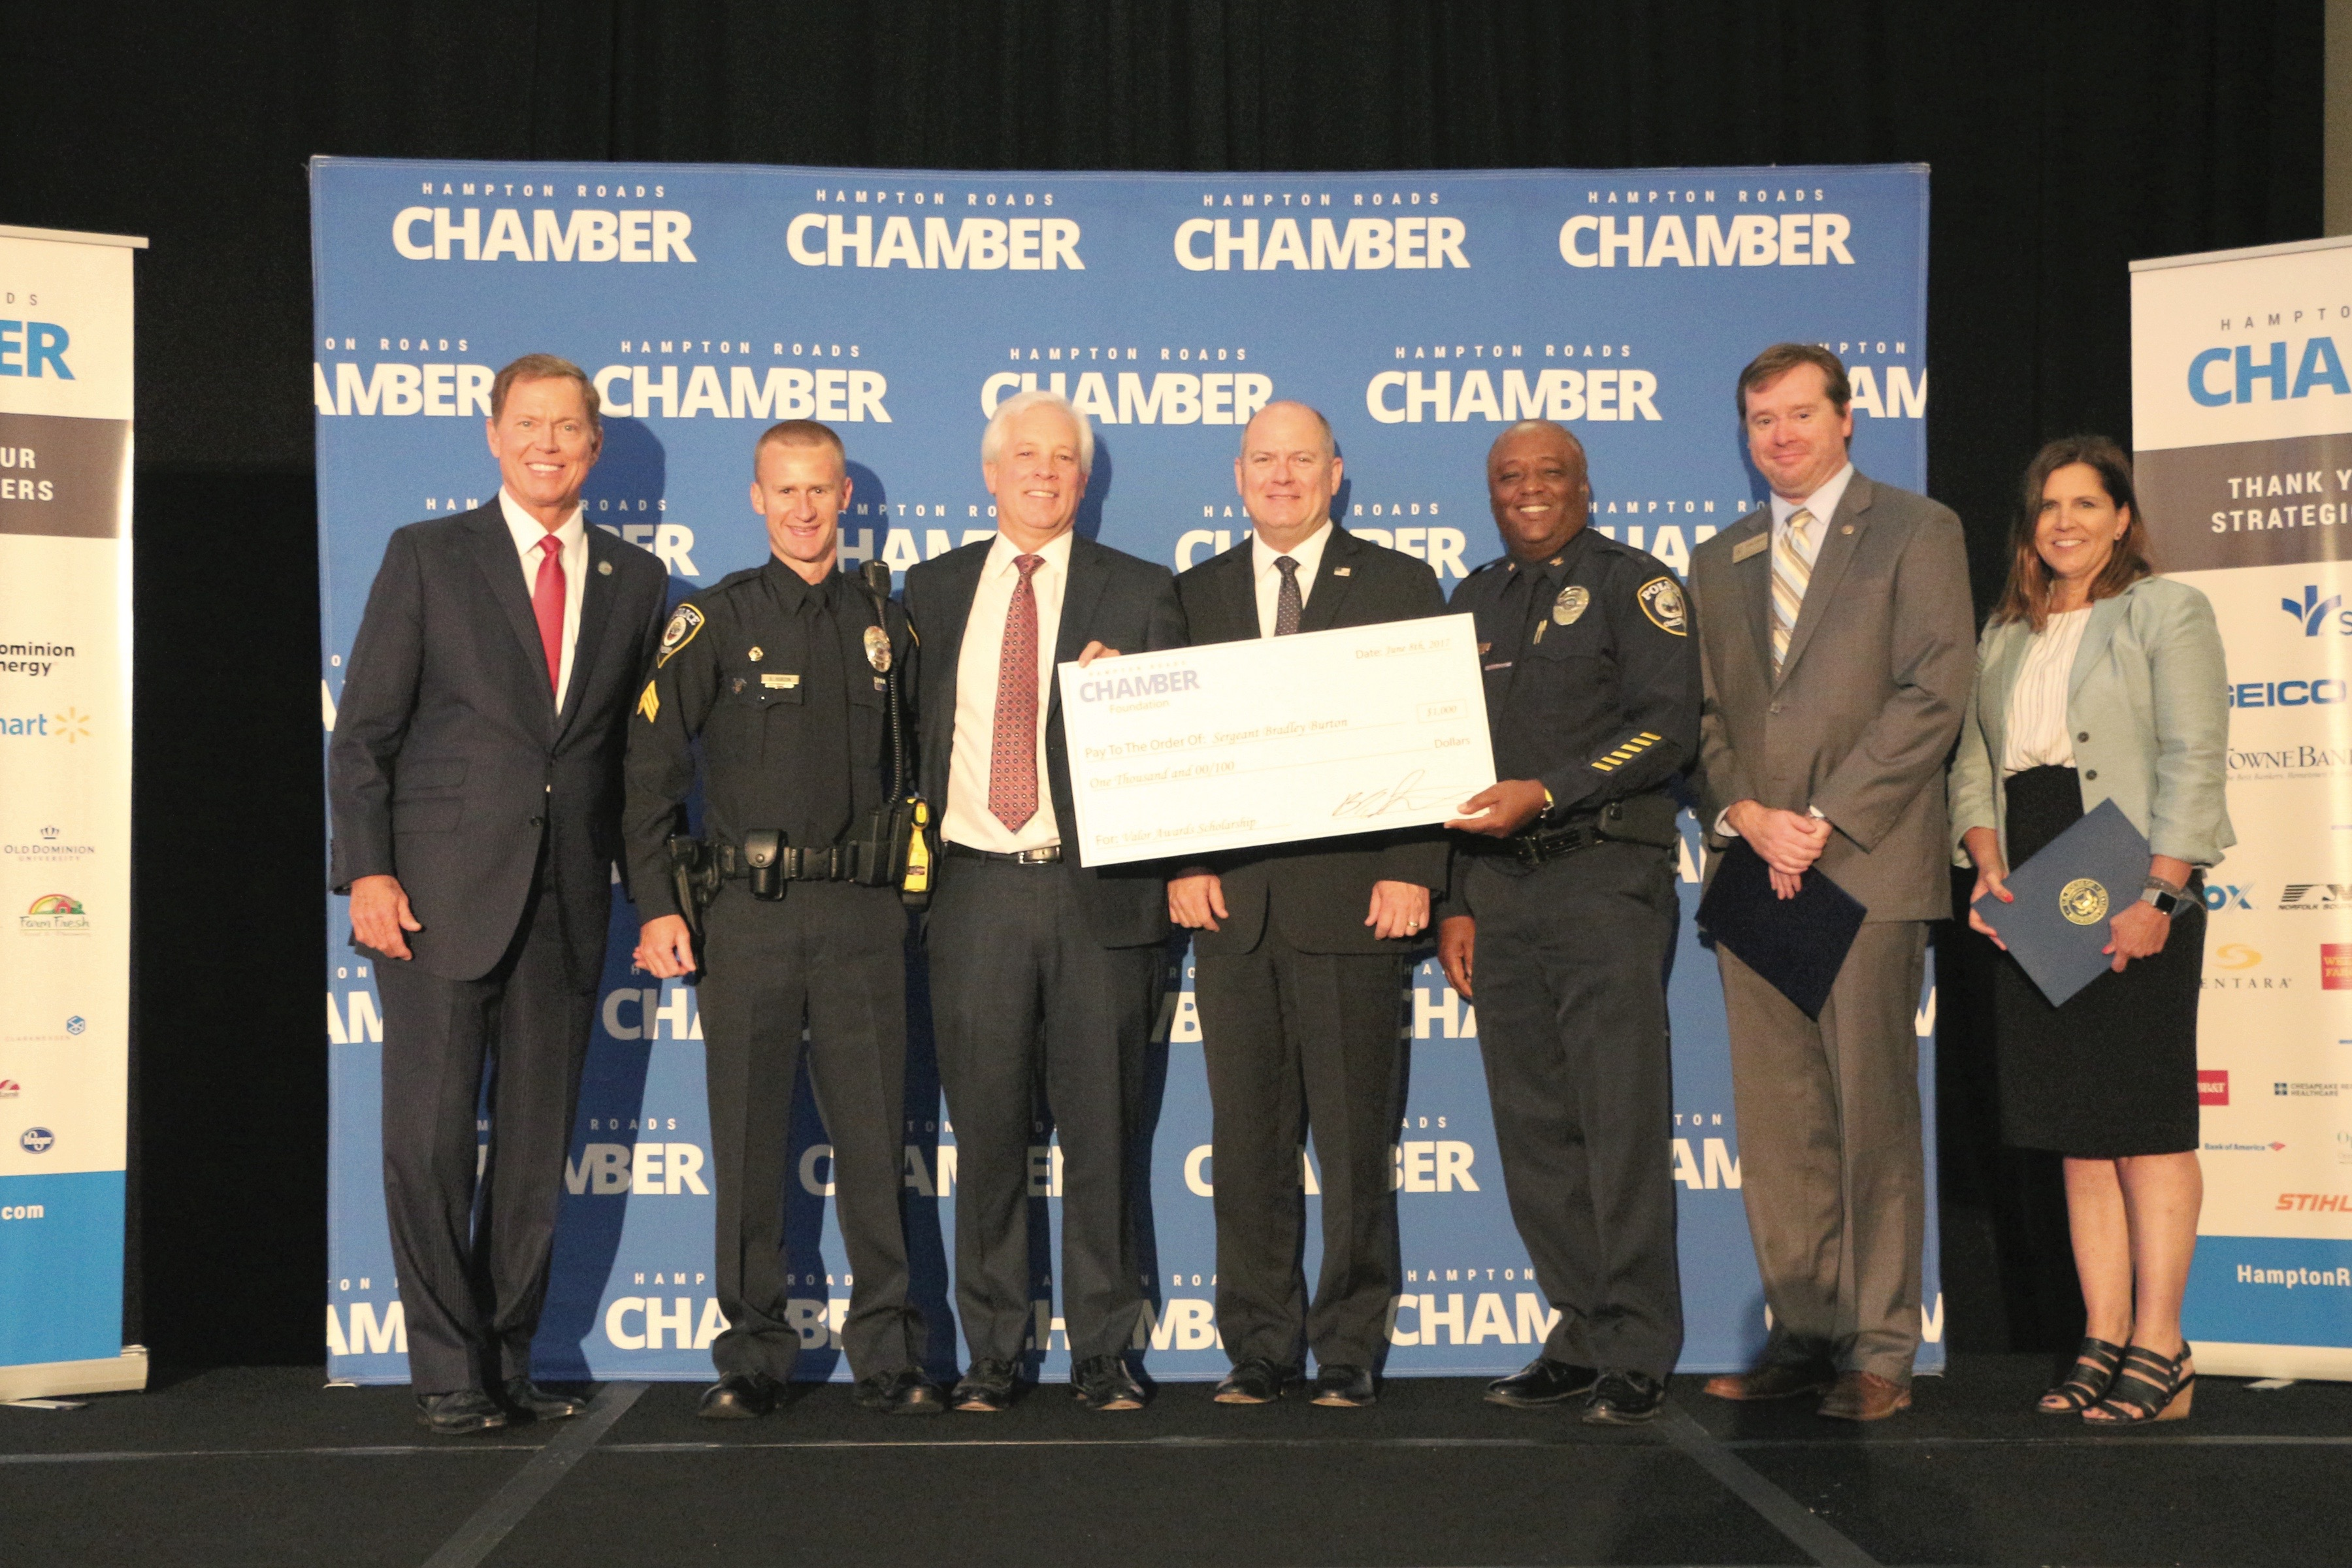 Hampton Roads Chamber, Hampton Roads Community Impact Awards